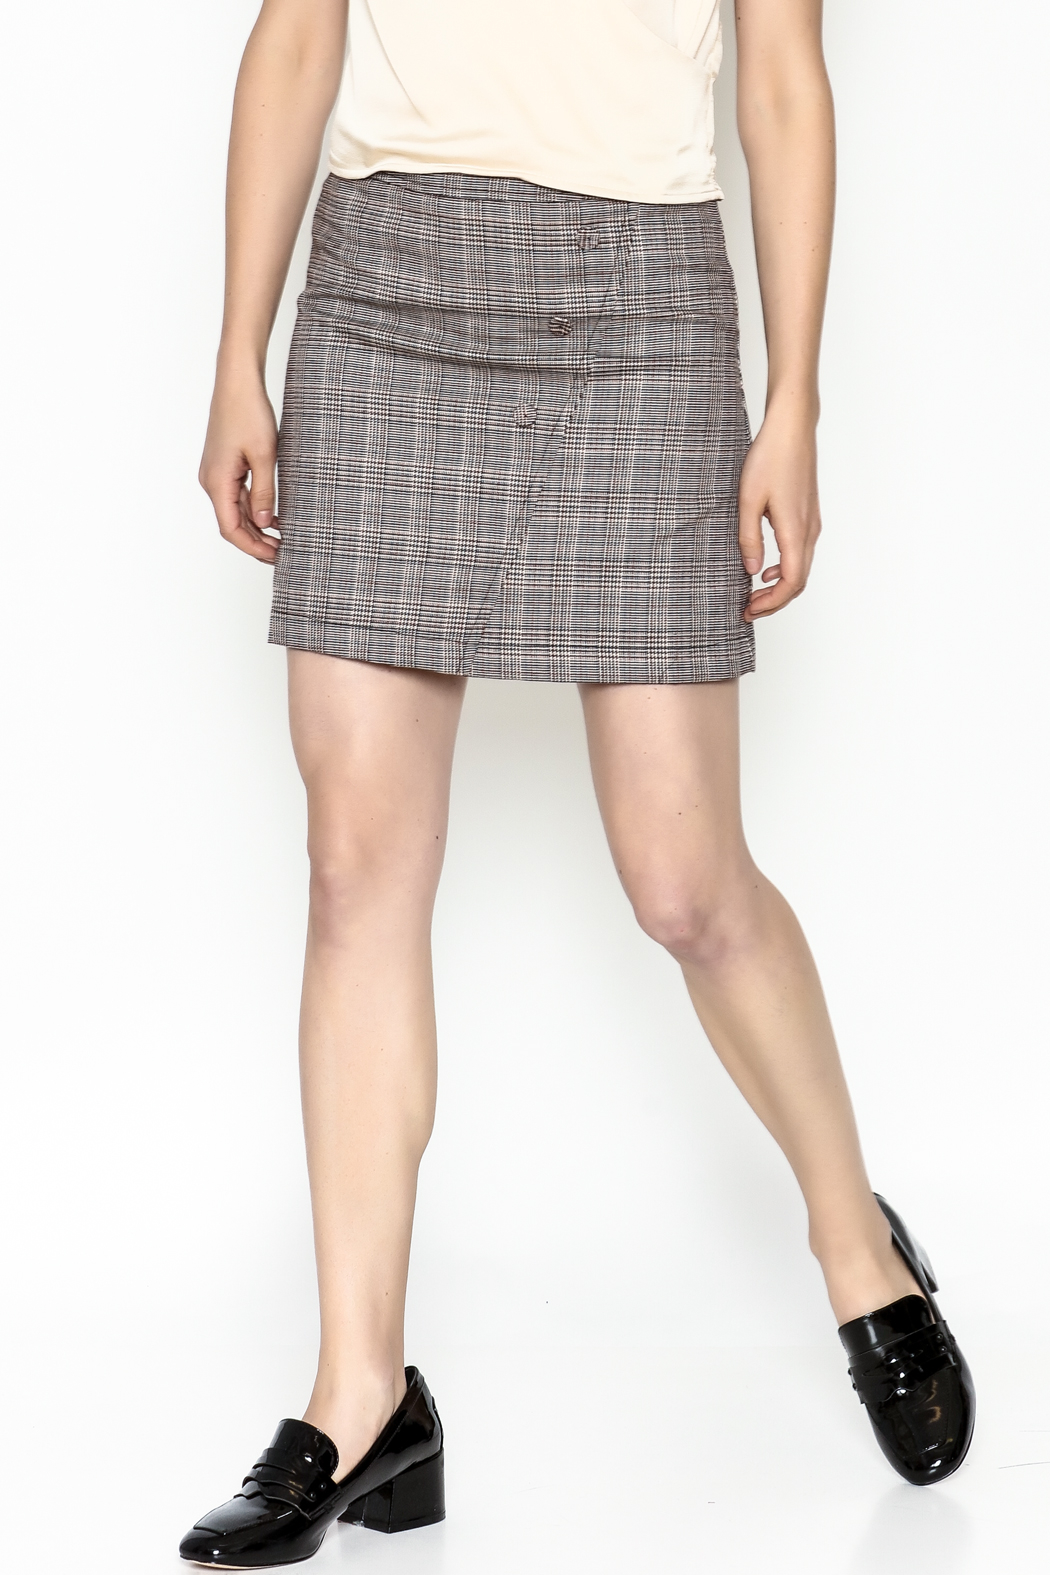 Very J Plaid Skirt - Main Image